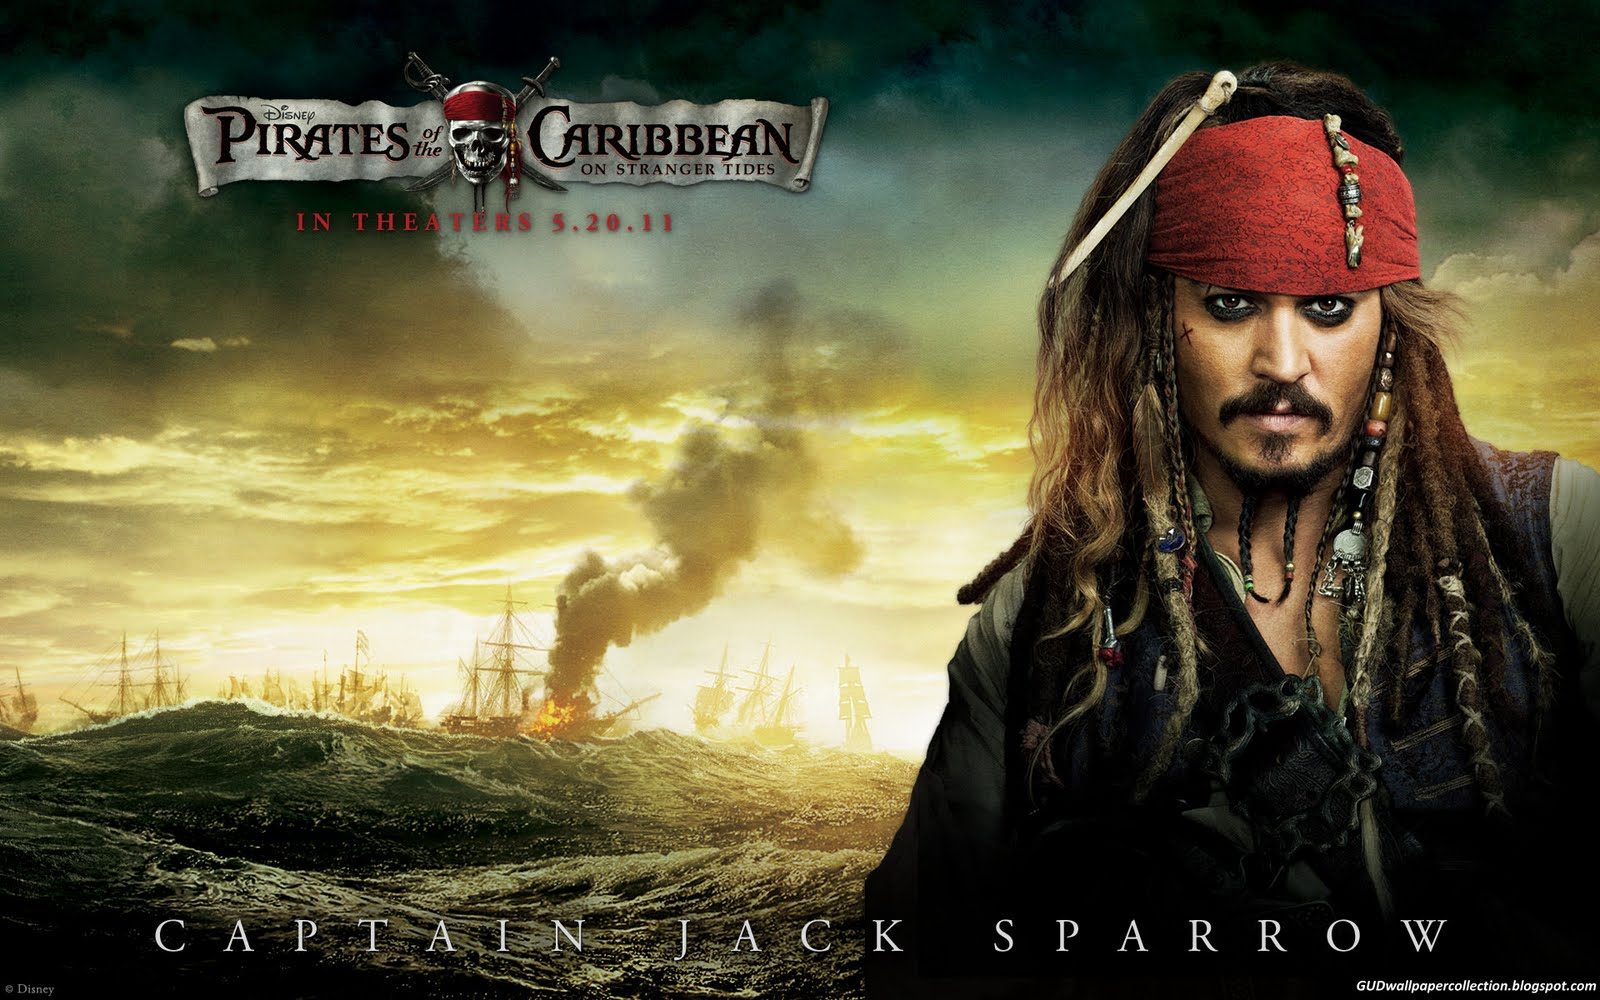 http://3.bp.blogspot.com/-Xd9KBTca--4/TdjdJ80AWvI/AAAAAAAAAcI/5faO7621pcM/s1600/johnny_depp_in_pirates_of_the_caribbean_4-wide.jpg